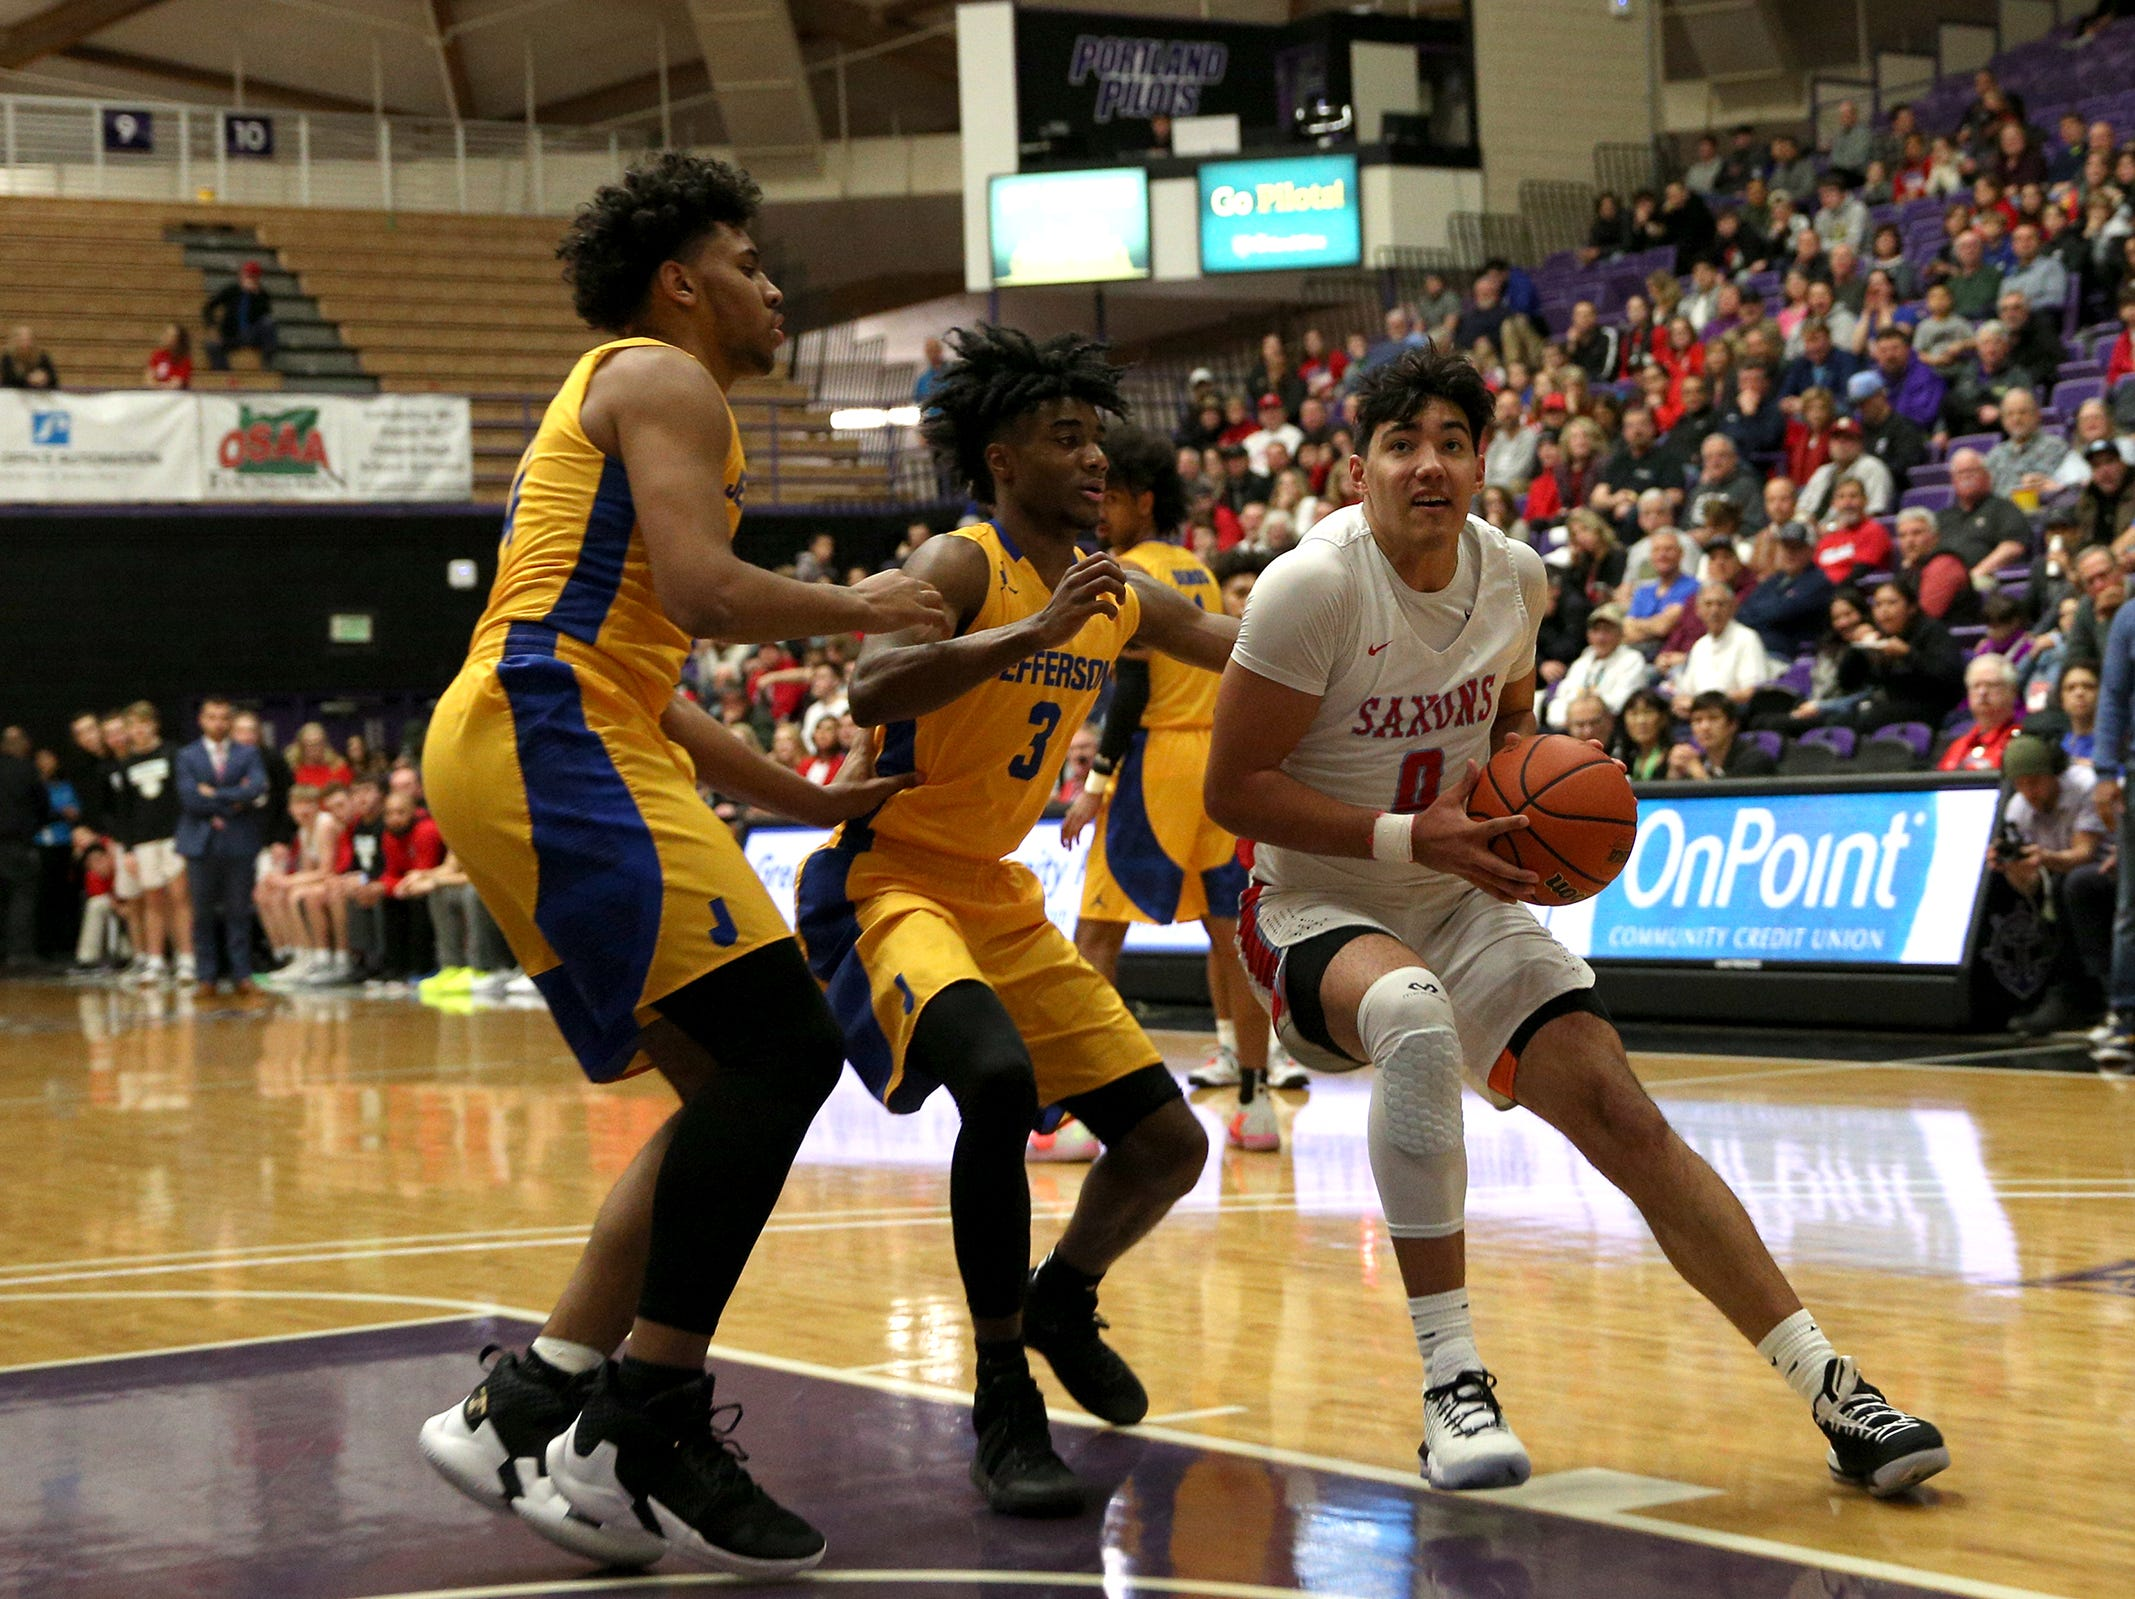 South Salem's Treyden Harris (0) makes his way into the paint during the South Salem vs. Jefferson boys basketball OSAA 6A semifinal game at Chiles Center in Portland on Friday, March 8, 2019.